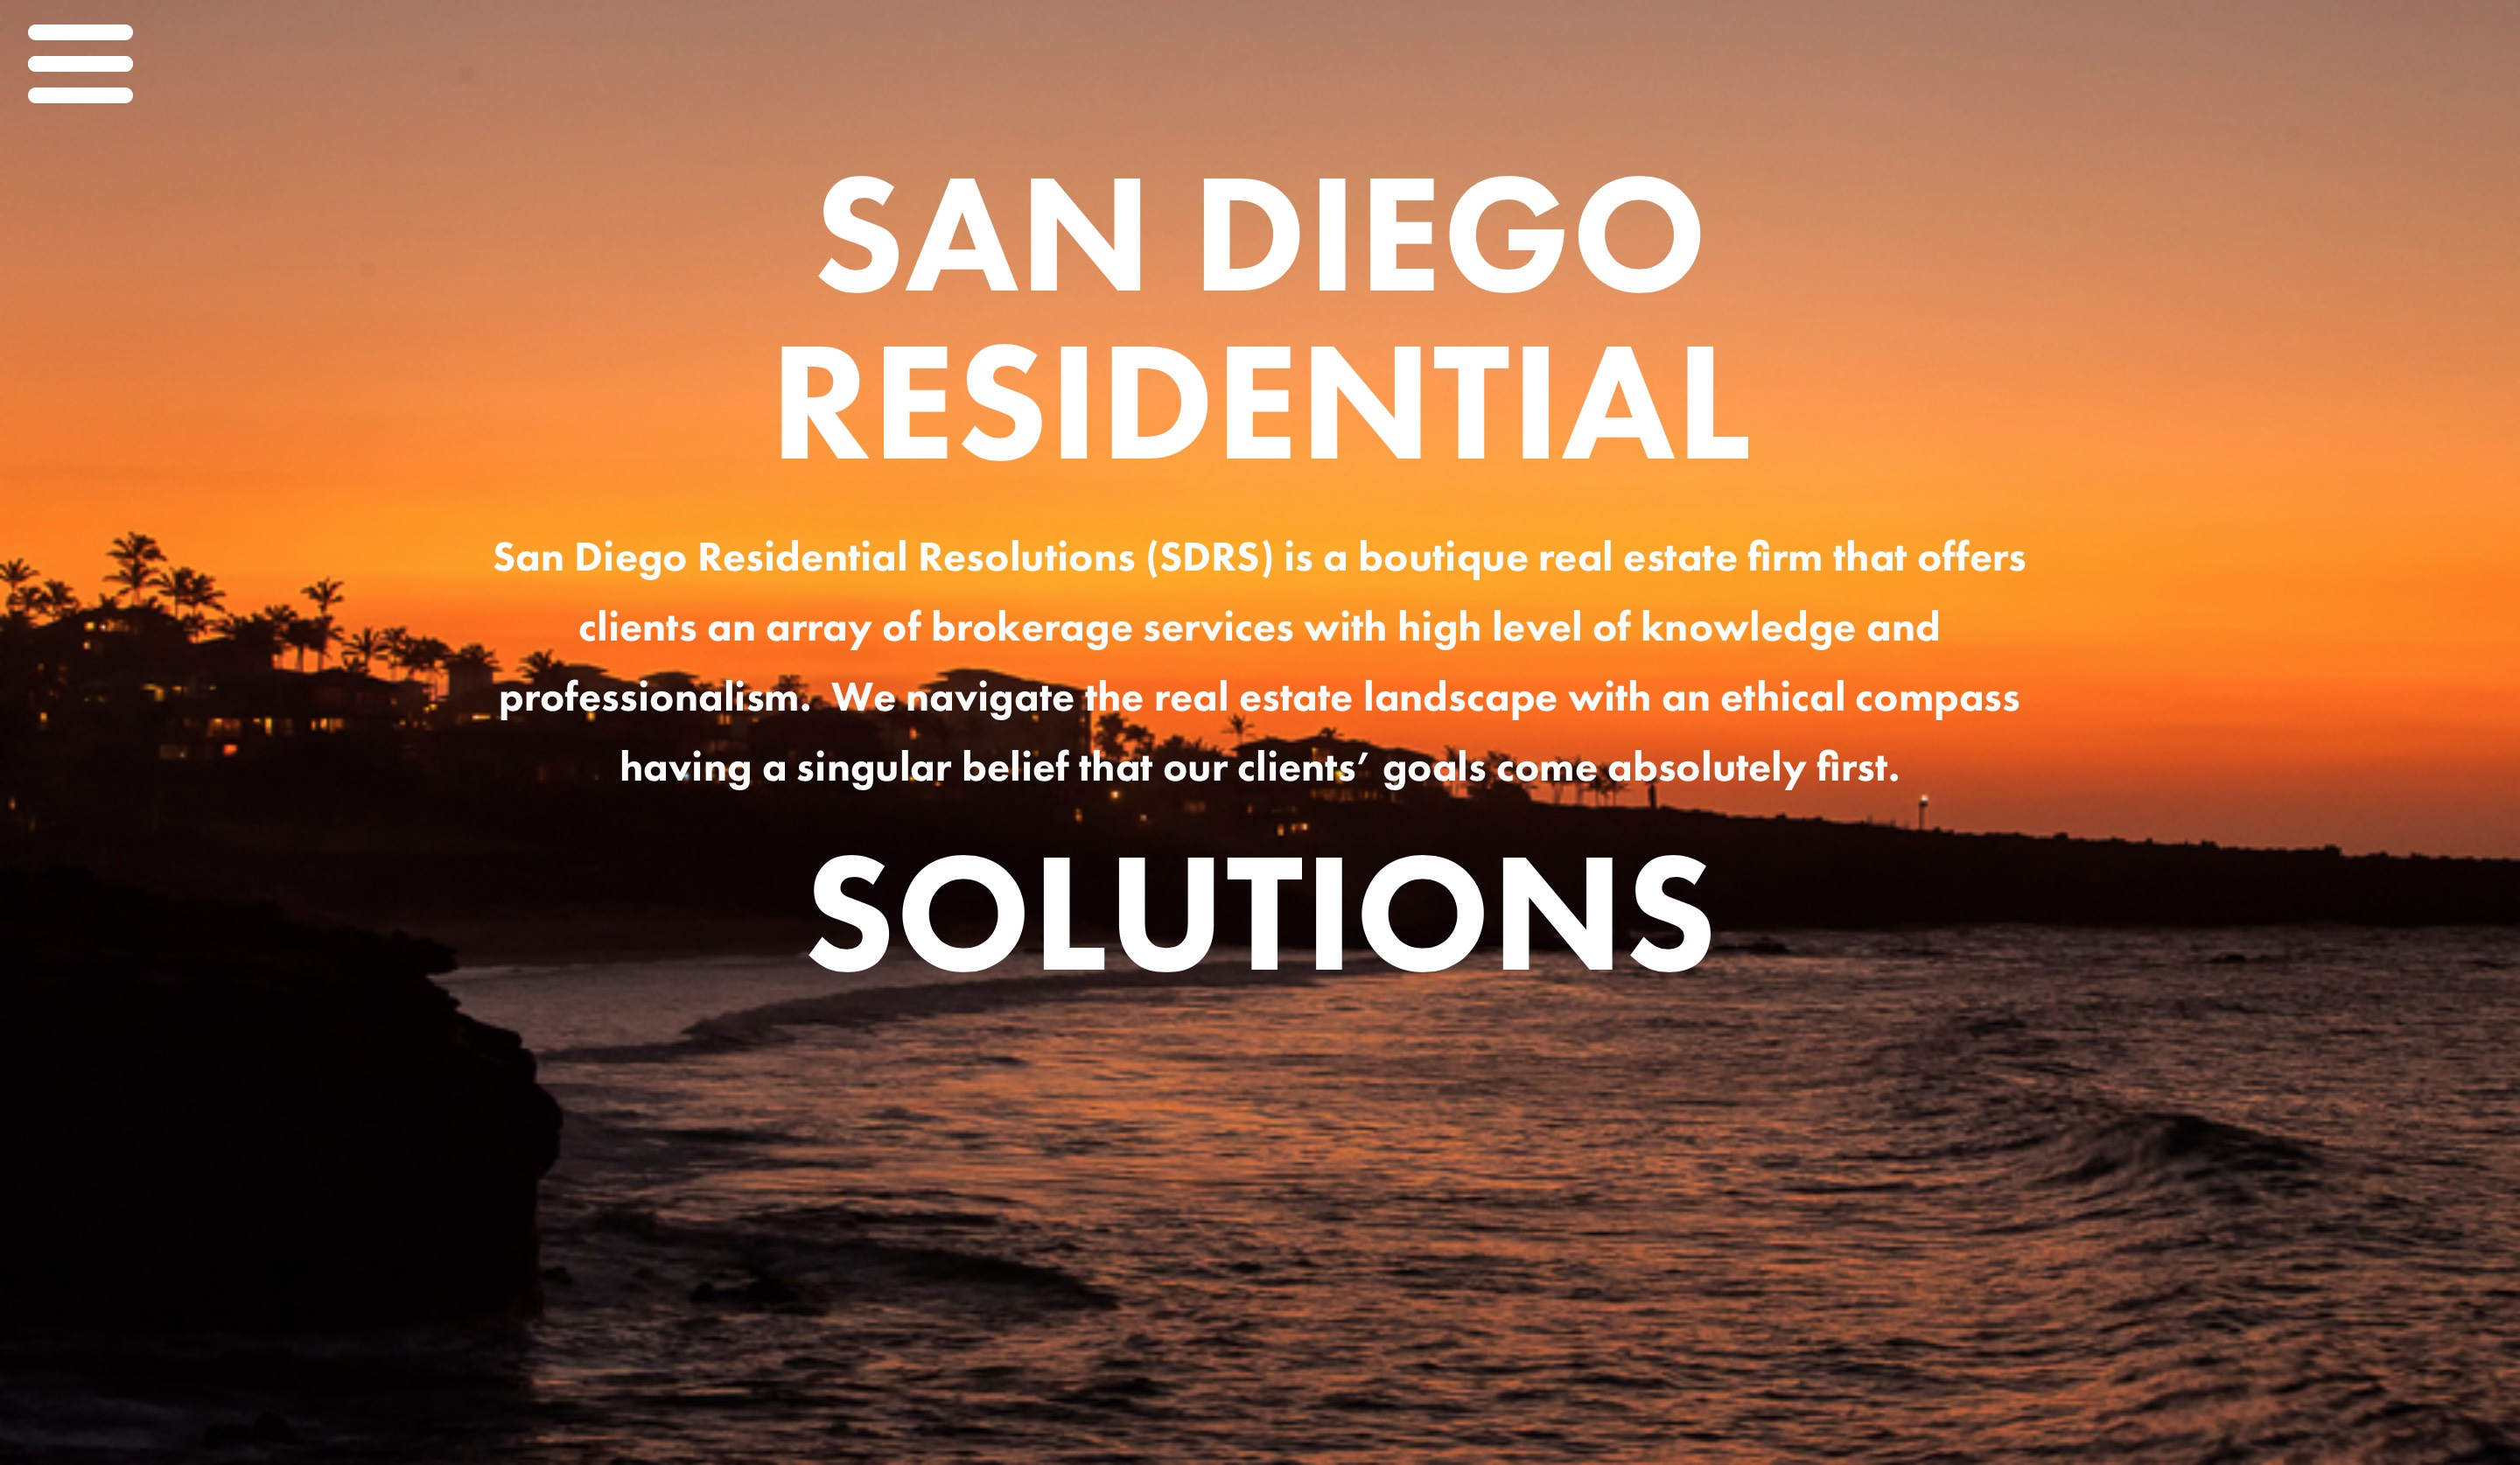 San Diego Residential Solutions home page screenshot